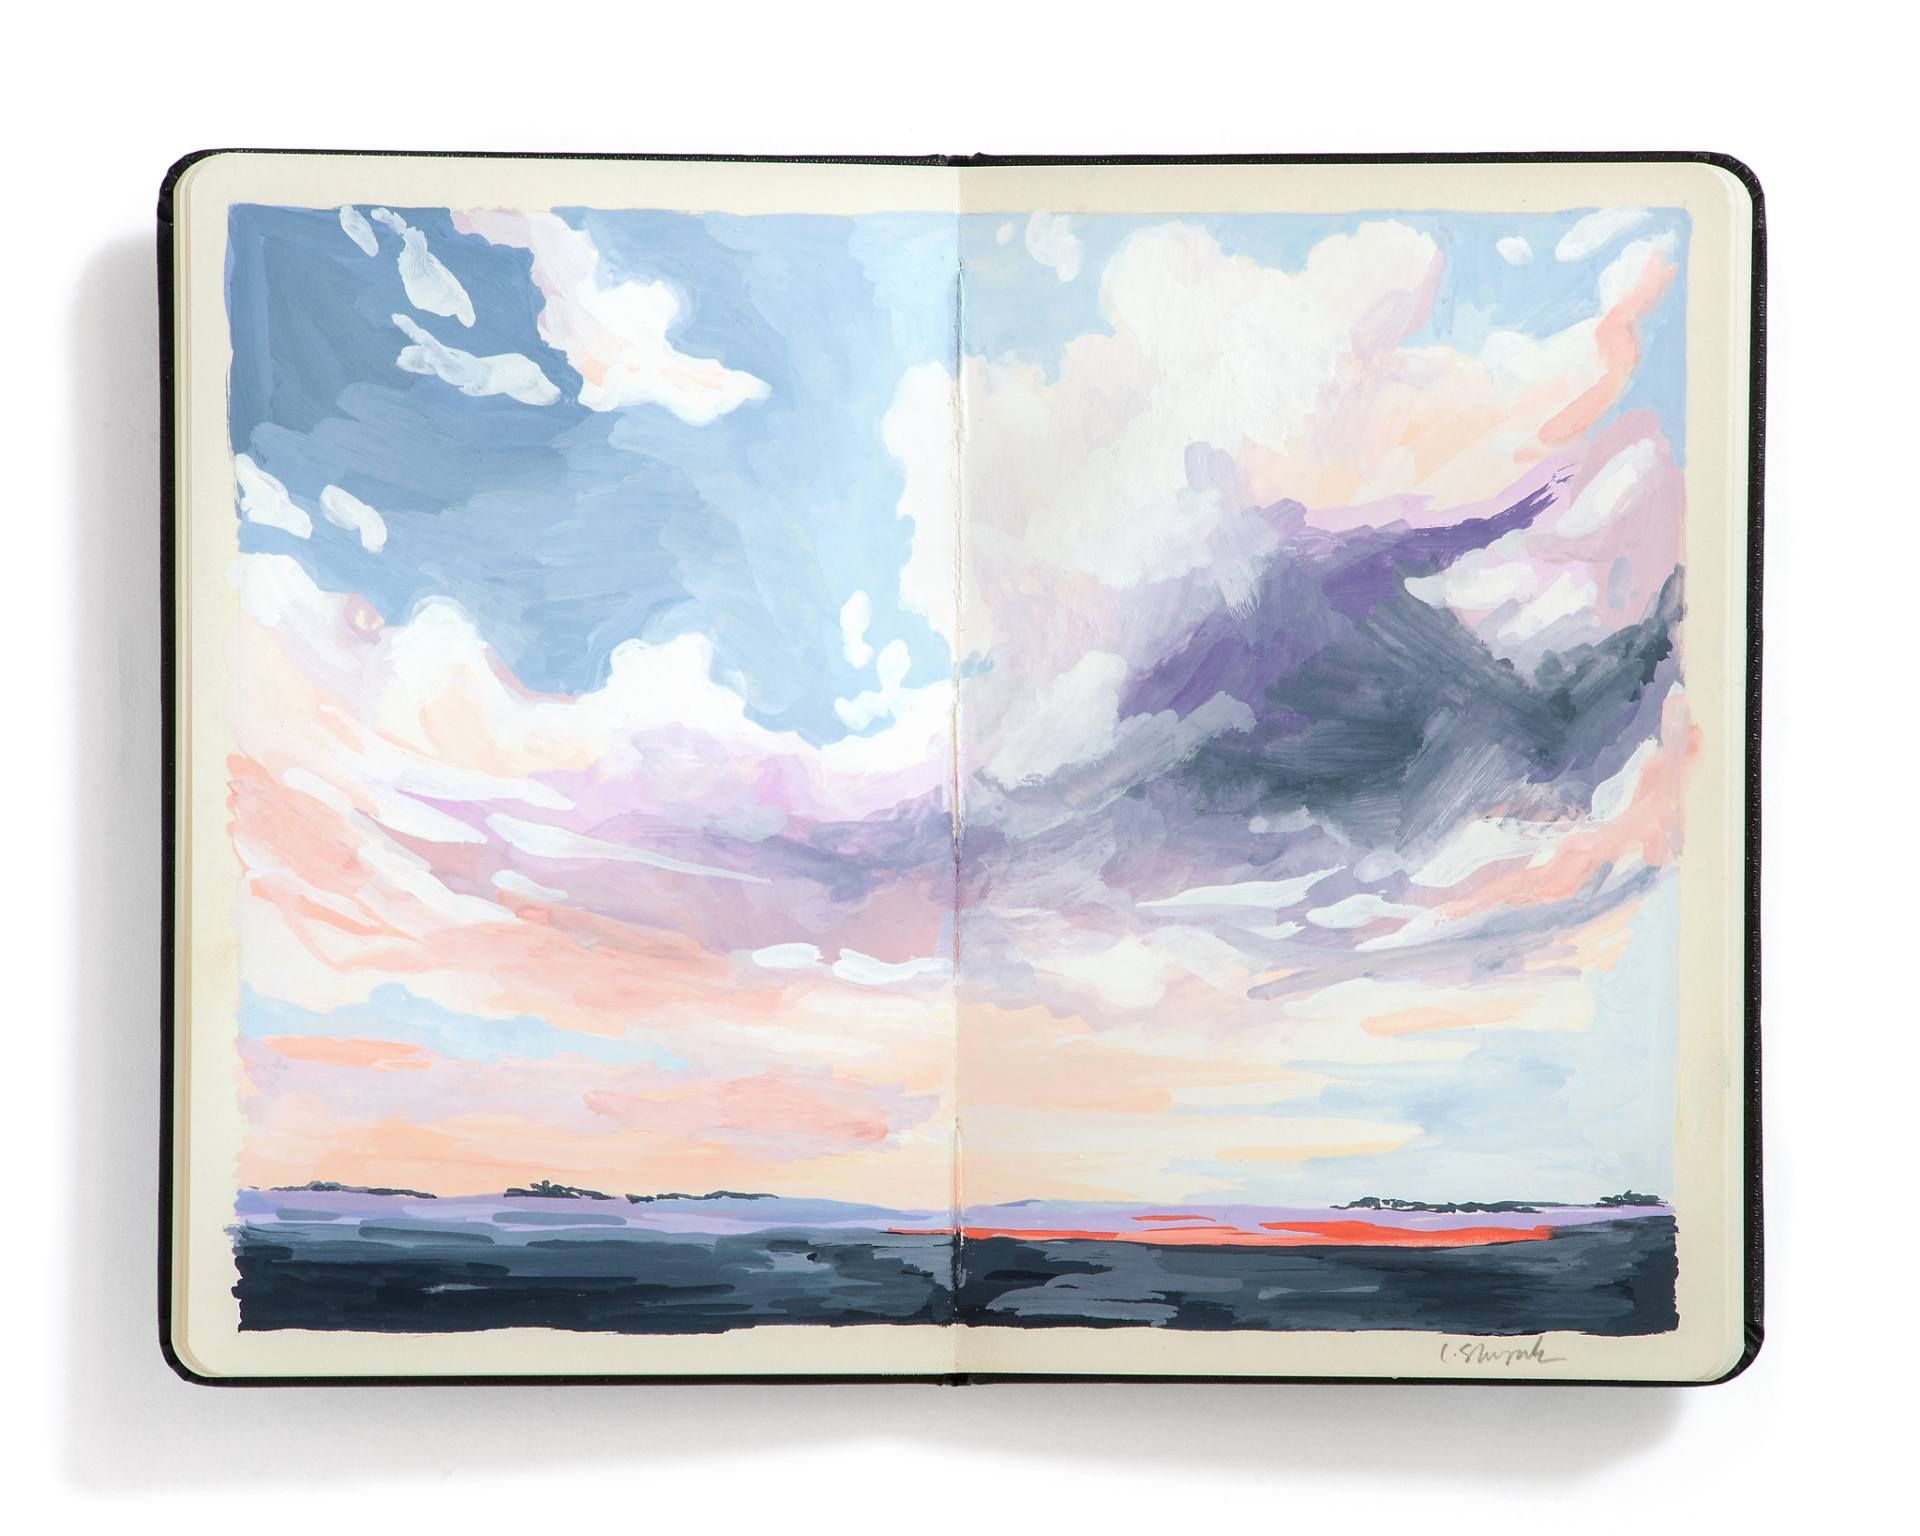 Buy Prints of Prairie Sky No. 20, a Gouache on Paper by Carrie Shryock from United States. It portrays: Landscape, relevant to: painting, prairie, illlustration, sketchbook, sky, blue, violet, clouds, coral, gouache, landscape Big prairie skies and wide open spaces. One in a series of landscape paintings from my sketchbook.